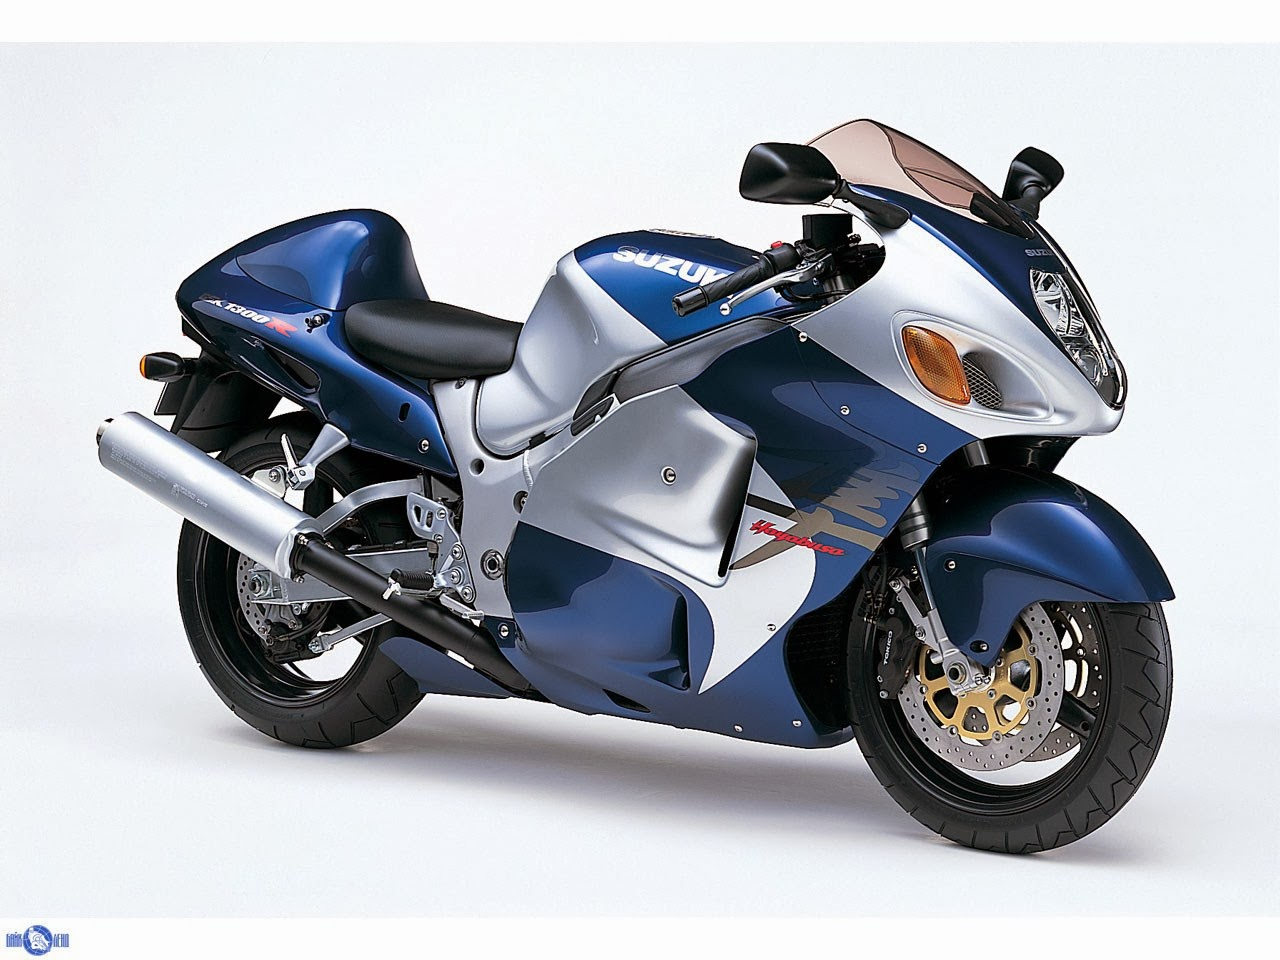 Suzuki Hayabusa HD Photos | Just Welcome To Automotive